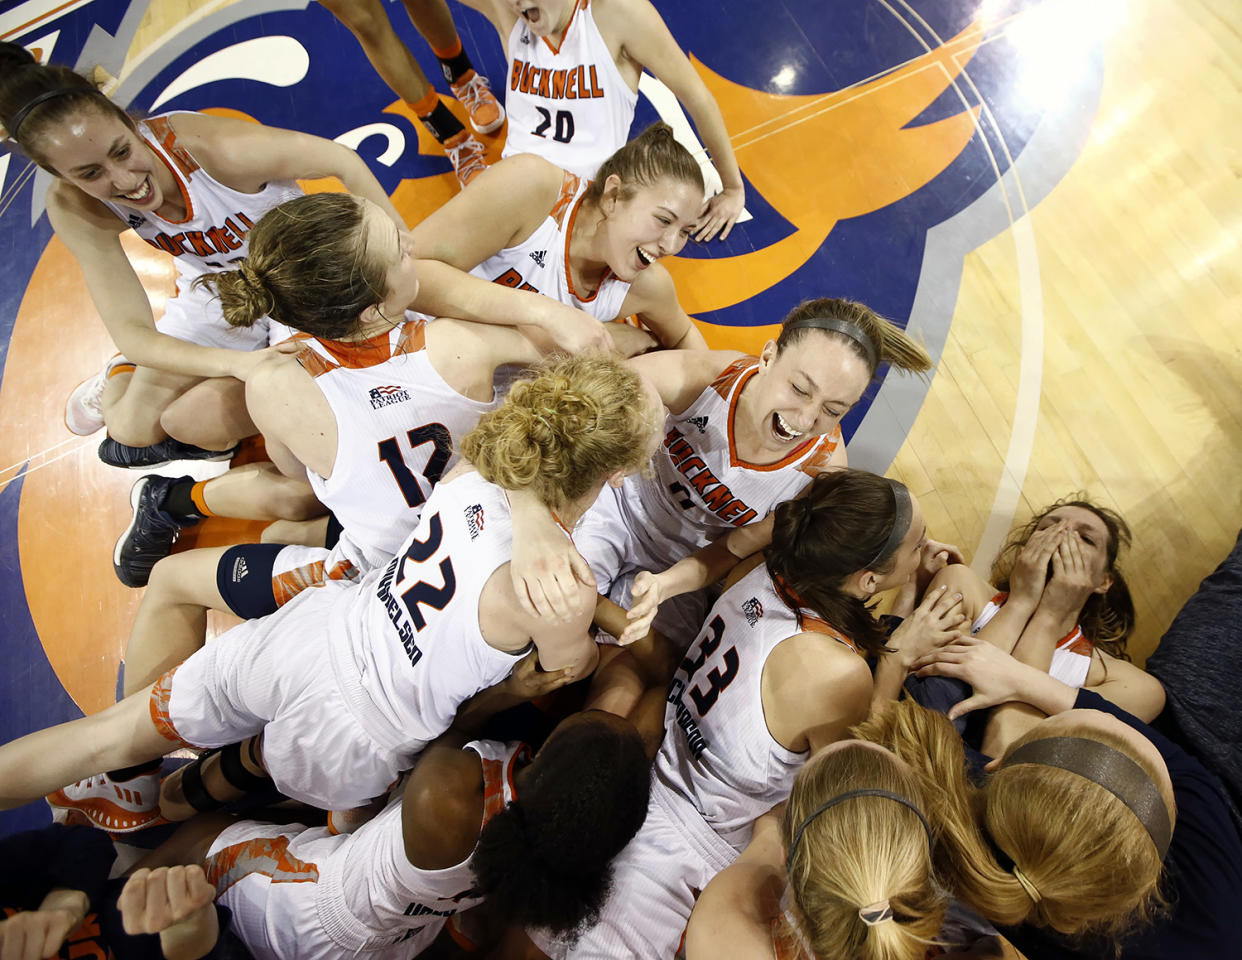 <p>Bucknell celebrates at centercourt after defeating Navy in overtime of an NCAA college basketball Patriot League Championship game in Lewisburg, Pa., March 12, 2017. (Photo: Chris Knight/AP) </p>